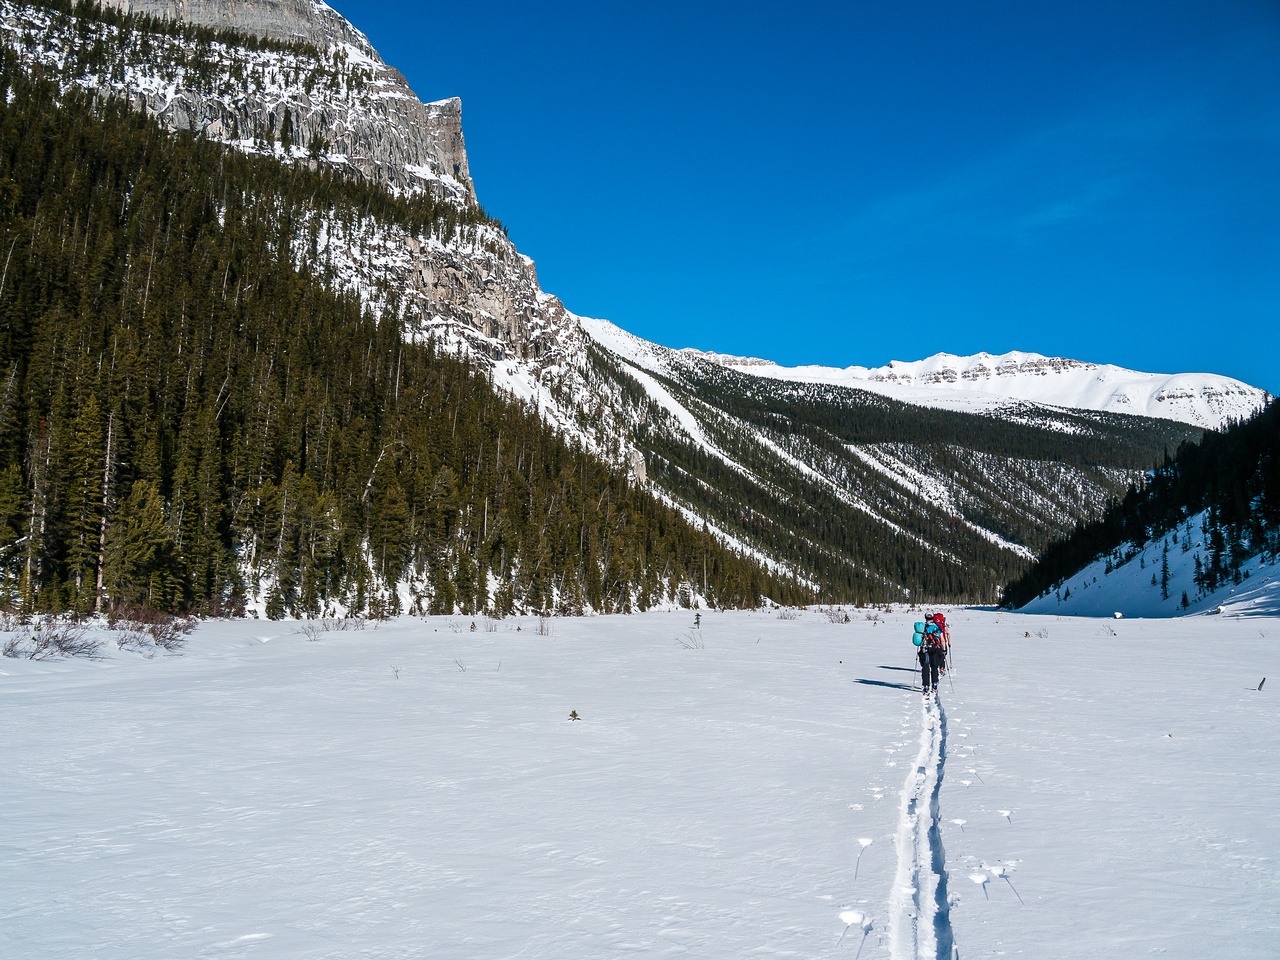 Finally approaching Hector Lake. It's very warm in this valley.